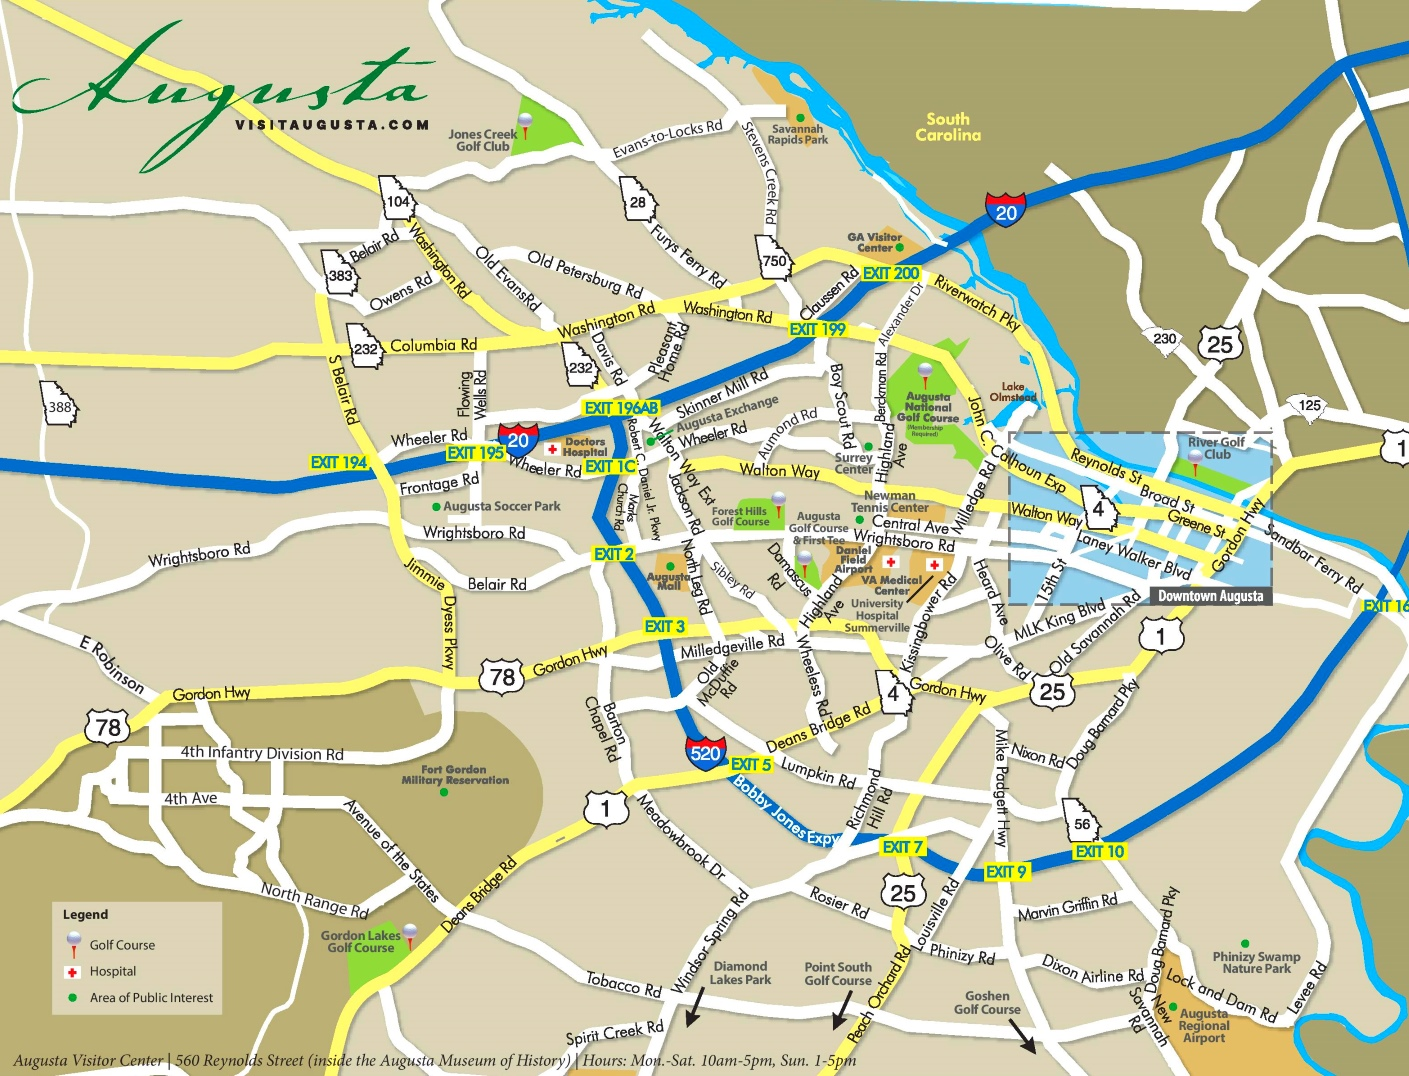 Map Of Augusta Georgia And Surrounding Area.Augusta Georgia Area Road Map